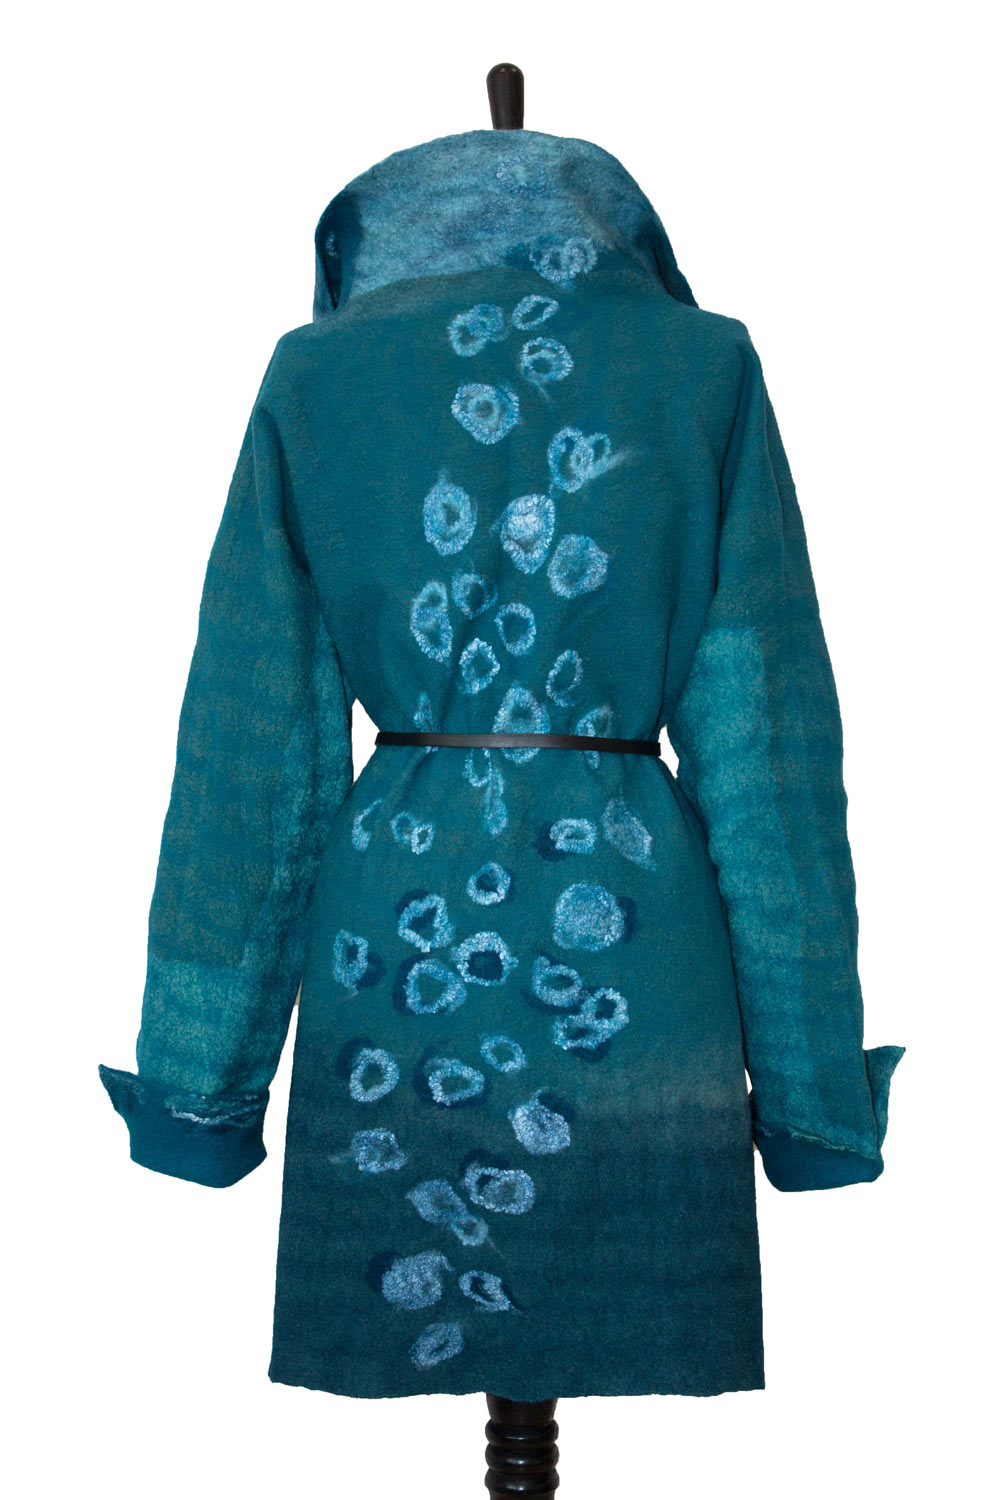 sawatou-felt-fashion-coat-jacke-turquoise-WEB